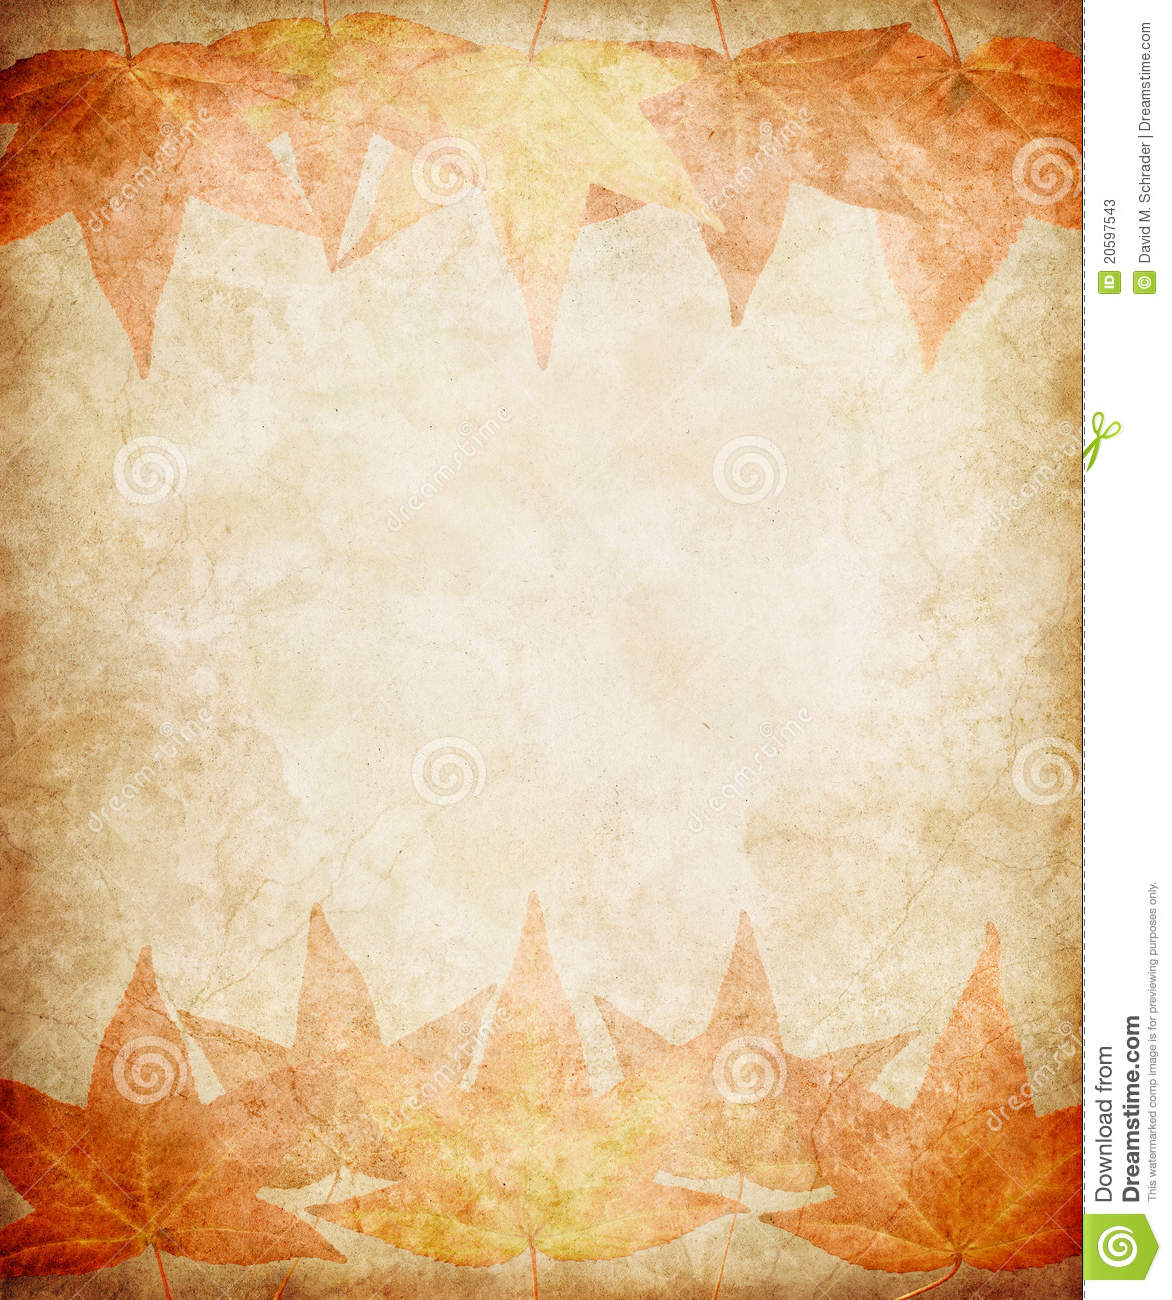 Fall Wallpaper Backgrounds Pumpkins Fall Leaves On Grunge Paper Stock Illustration